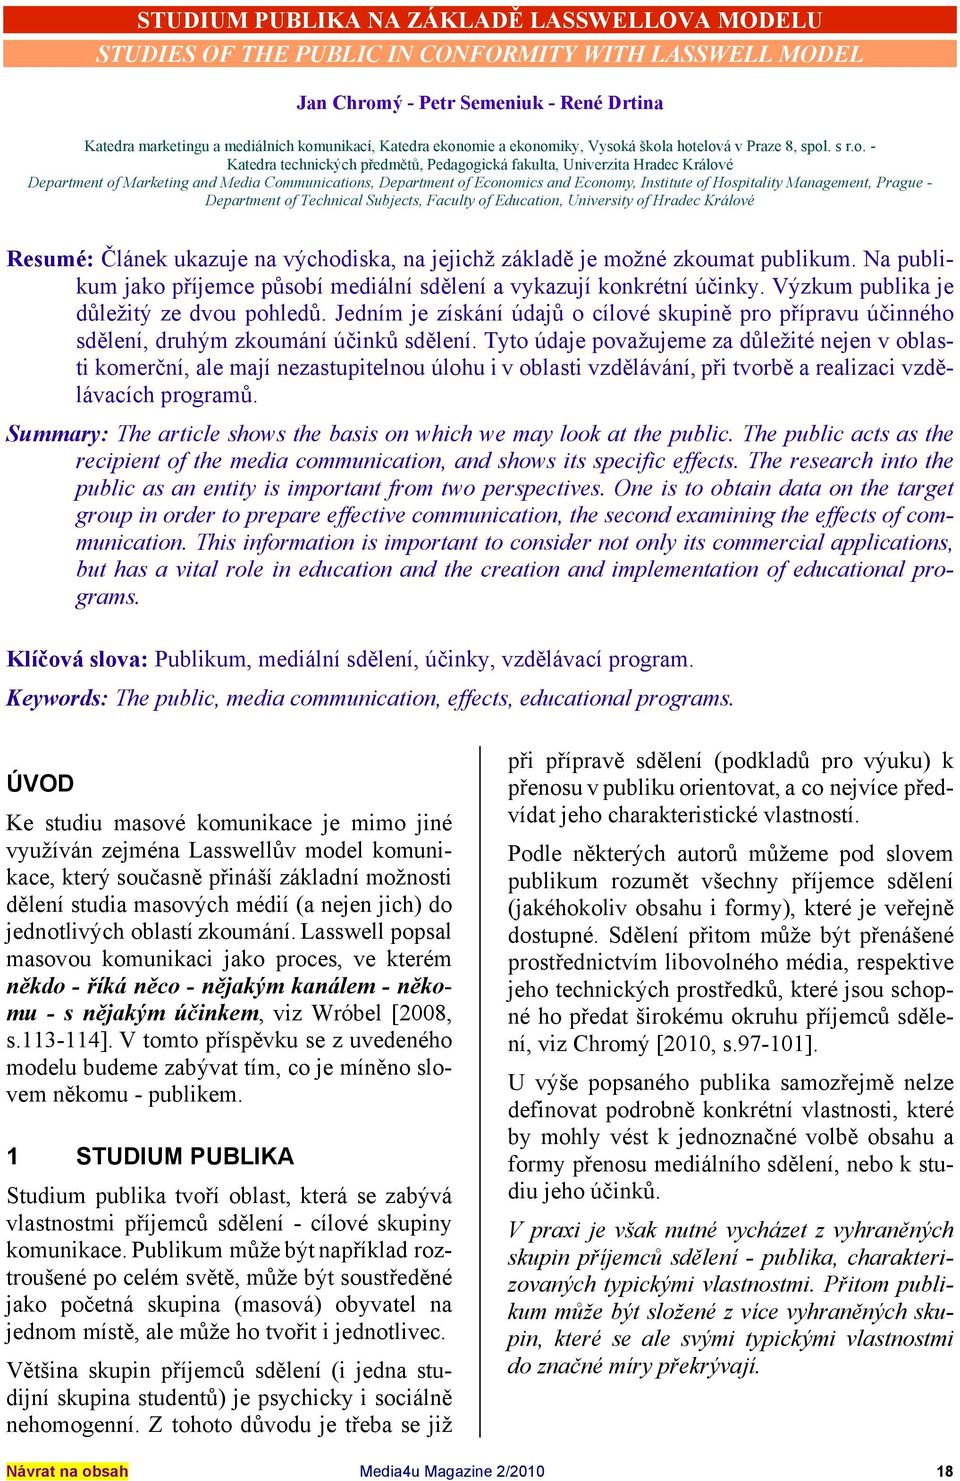 Department of Economics and Economy, Institute of Hospitality Management, Prague - Department of Technical Subjects, Faculty of Education, University of Hradec Králové Resumé: Článek ukazuje na